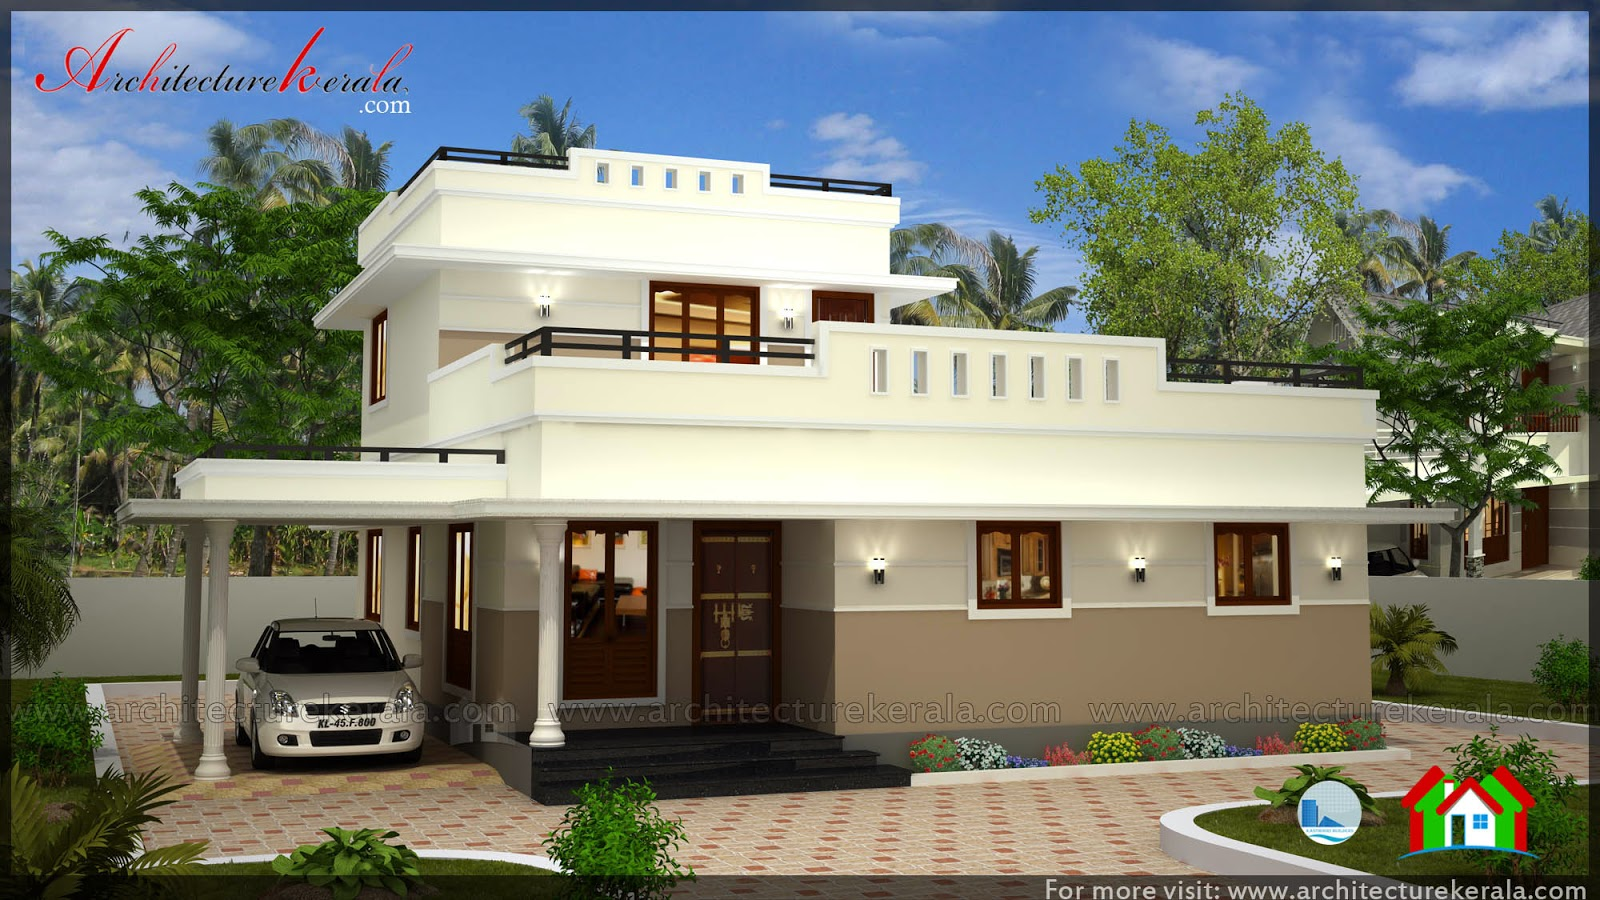 Low cost 3 bedroom kerala house plan with elevation free for Low cost house plans with photos